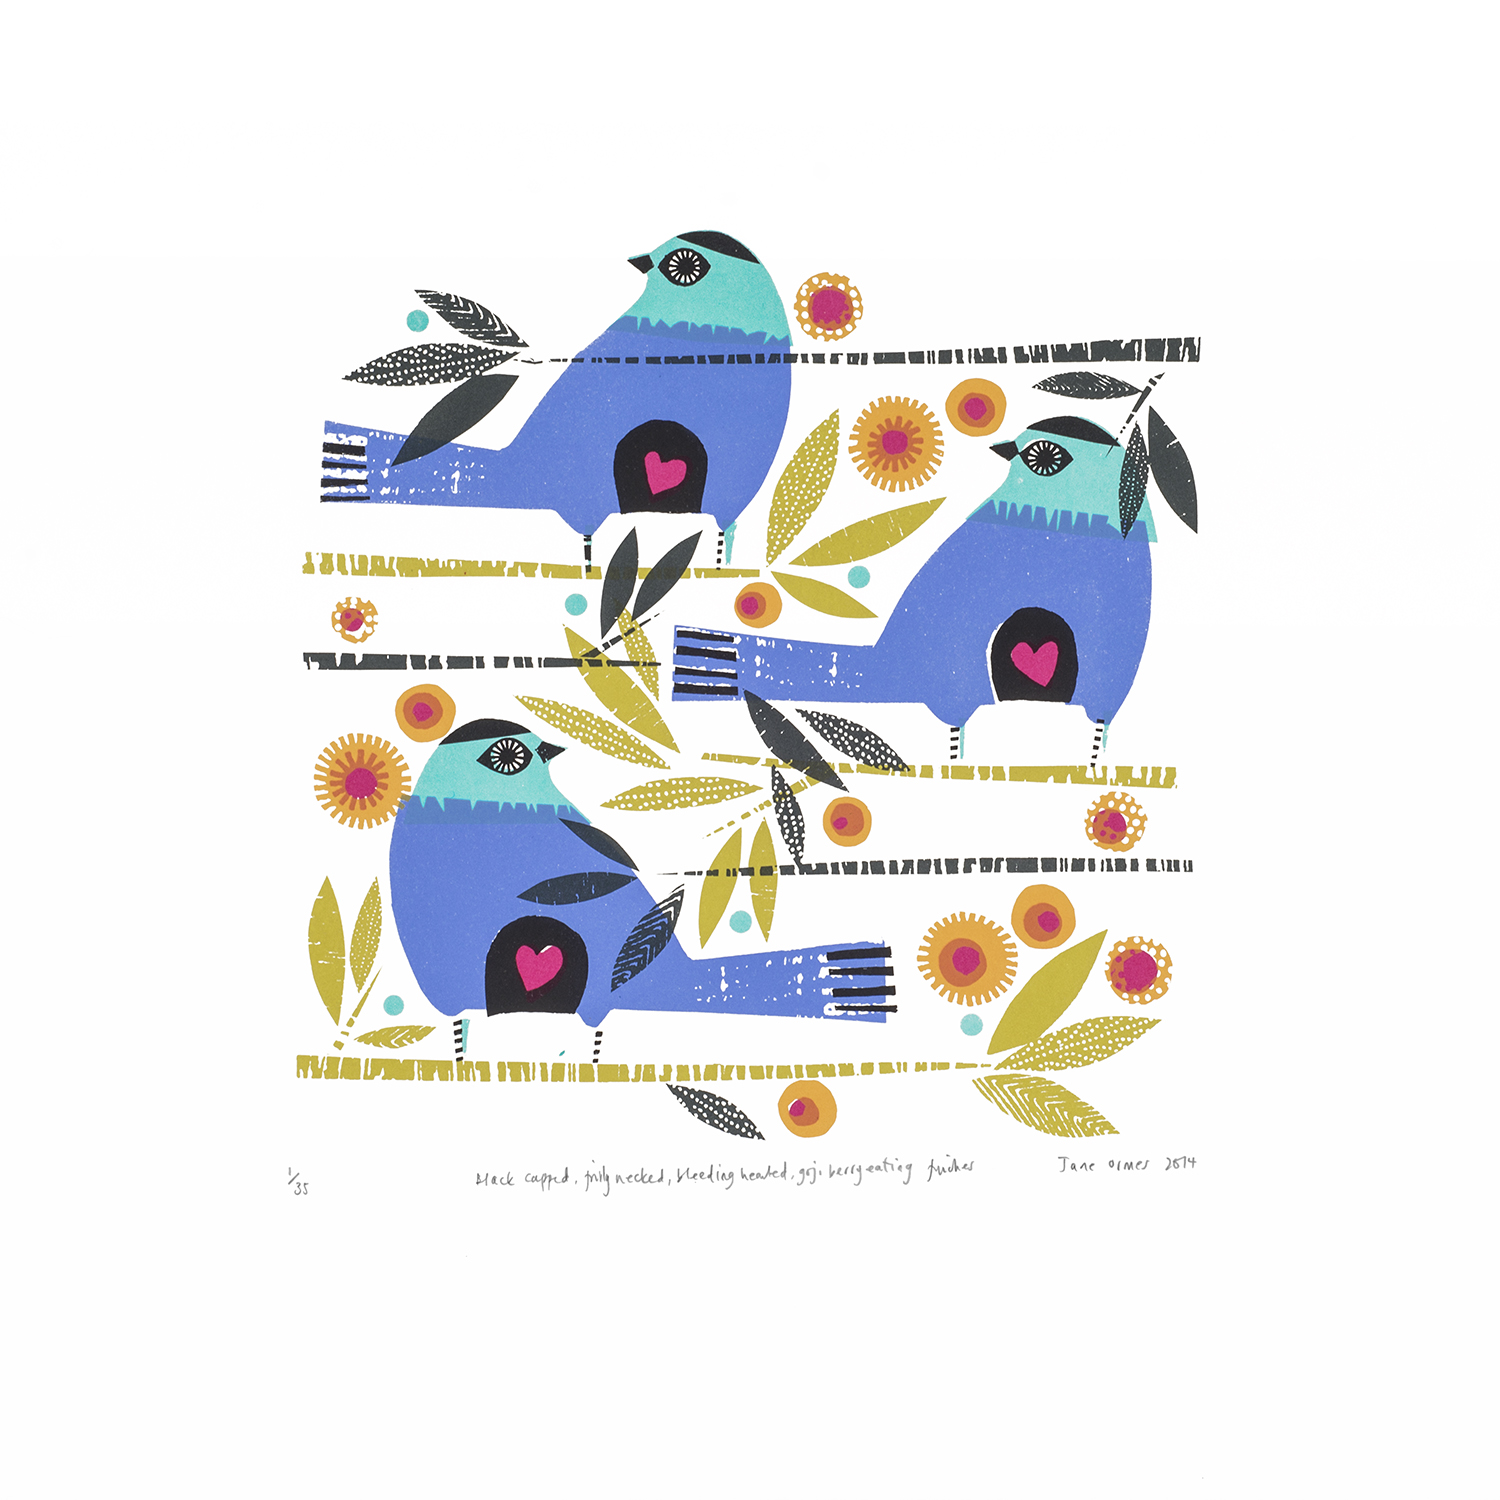 Black Capped, Frilly Necked, Bleeding Hearted, Goji Berry Eating Finches   screenprint